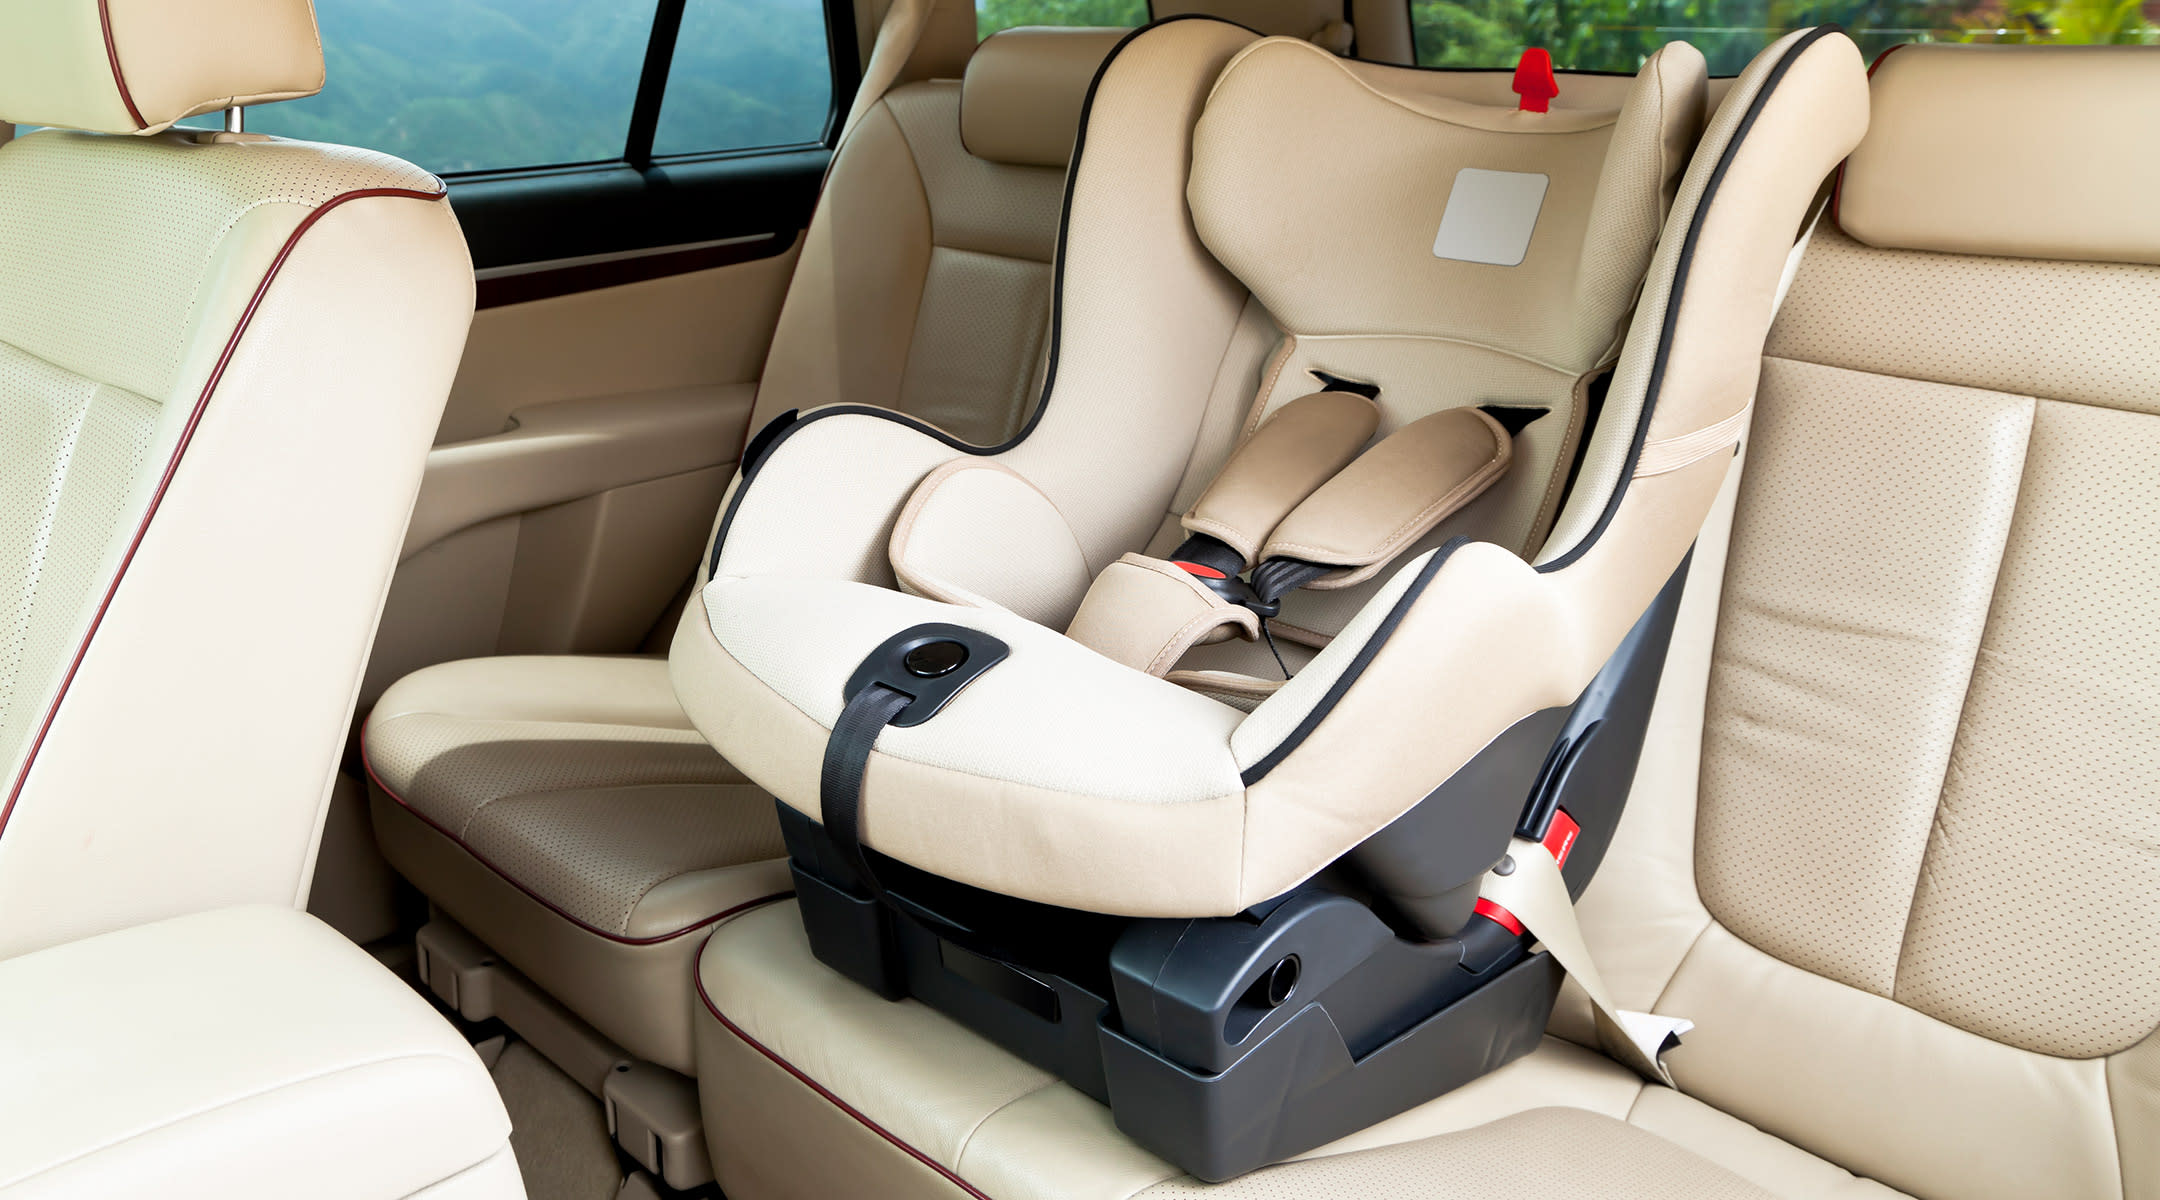 seat seats baby expiration child safety infant dates graco date carseat snugride toddler names britax long fill guide lowdown expire